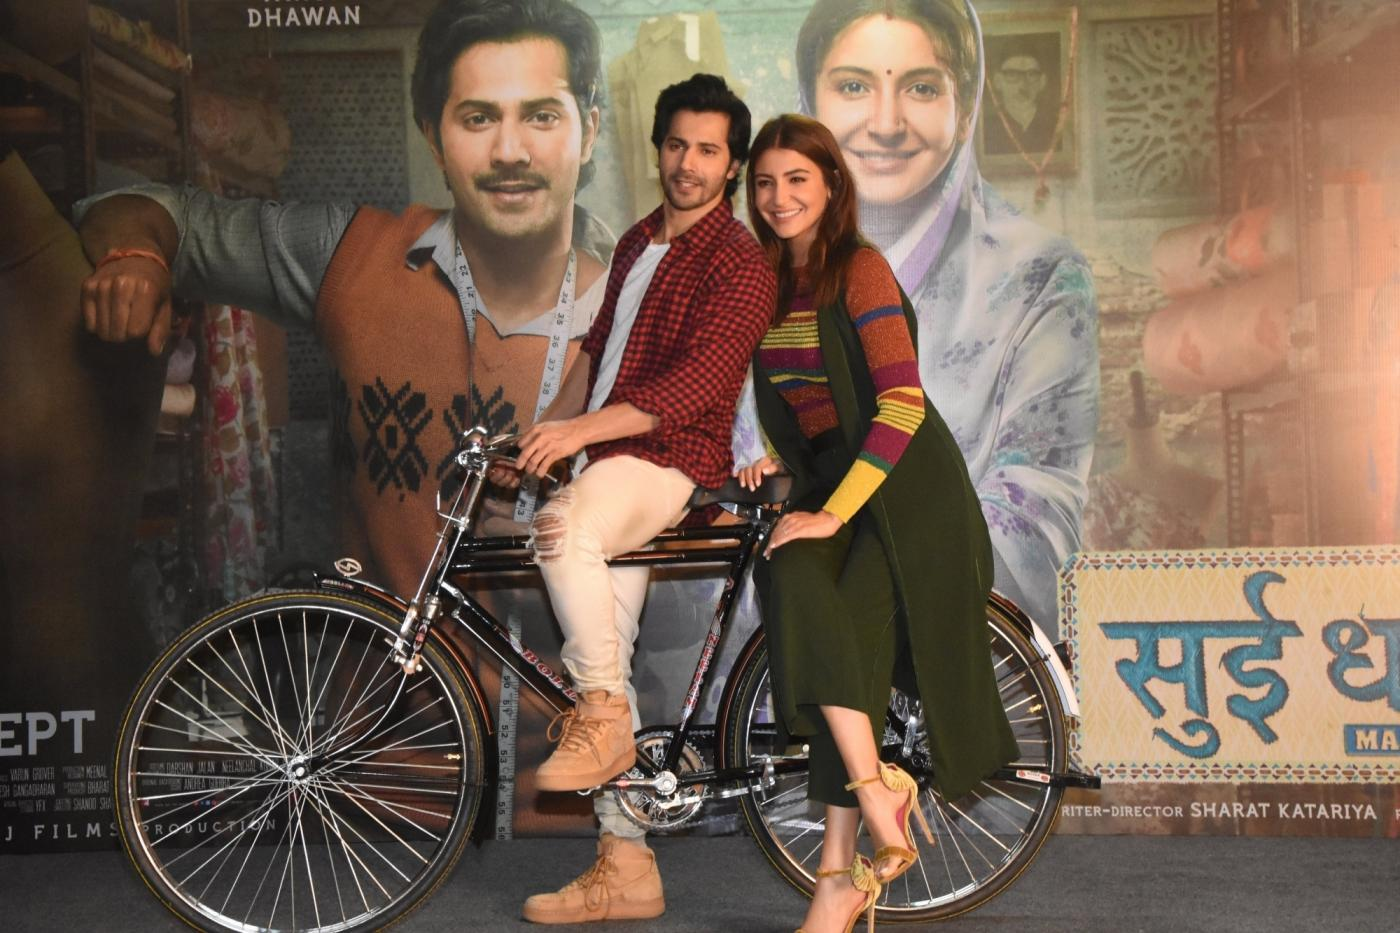 """Mumbai: Actors Varun Dhawan and Anushka Sharma at the promotion of their film """"Sui Dhaaga: Made in India"""" in Mumbai on Sept 27, 2018. (Photo: IANS) by ."""